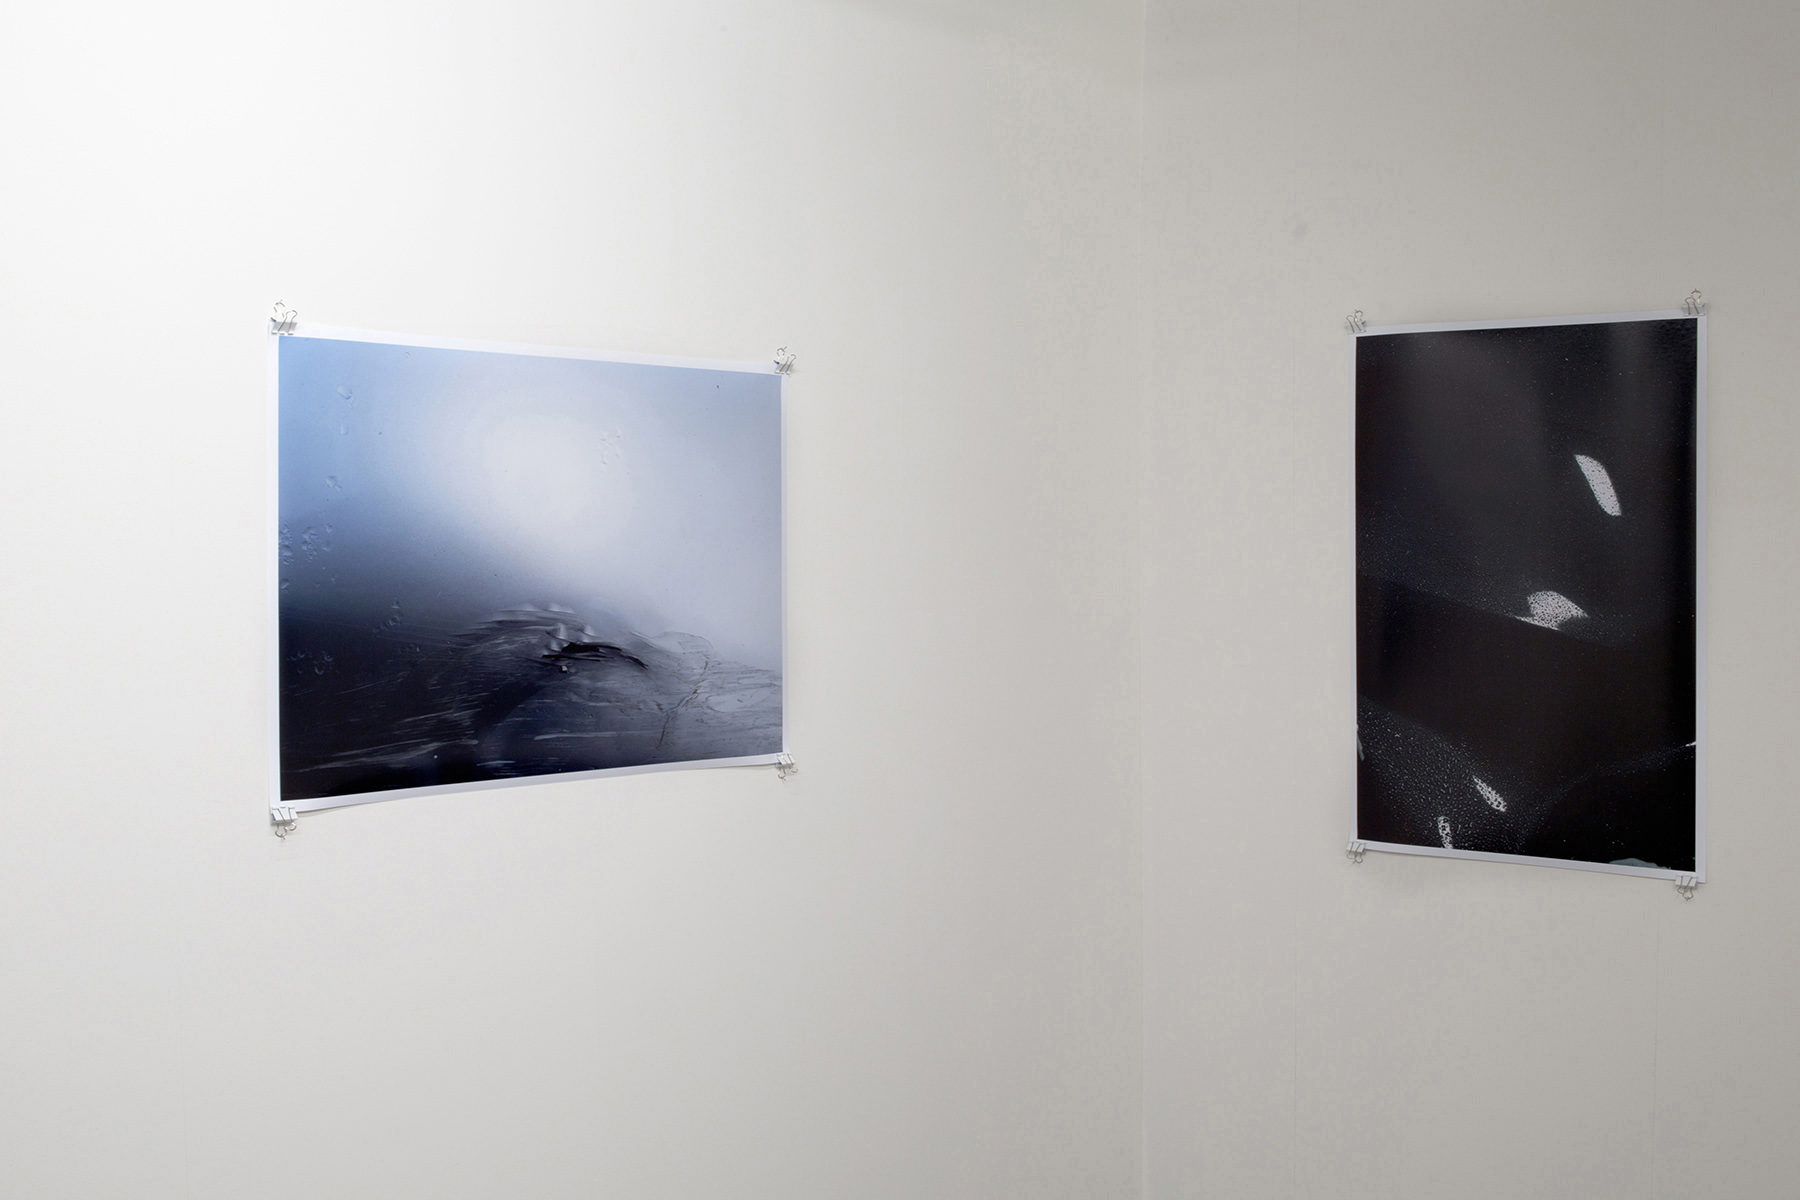 Chris Drange, Christoph David Drange, Shape Shifter, Aviator, Phantom, Crash Installation view, Photo Bastei, exhibition